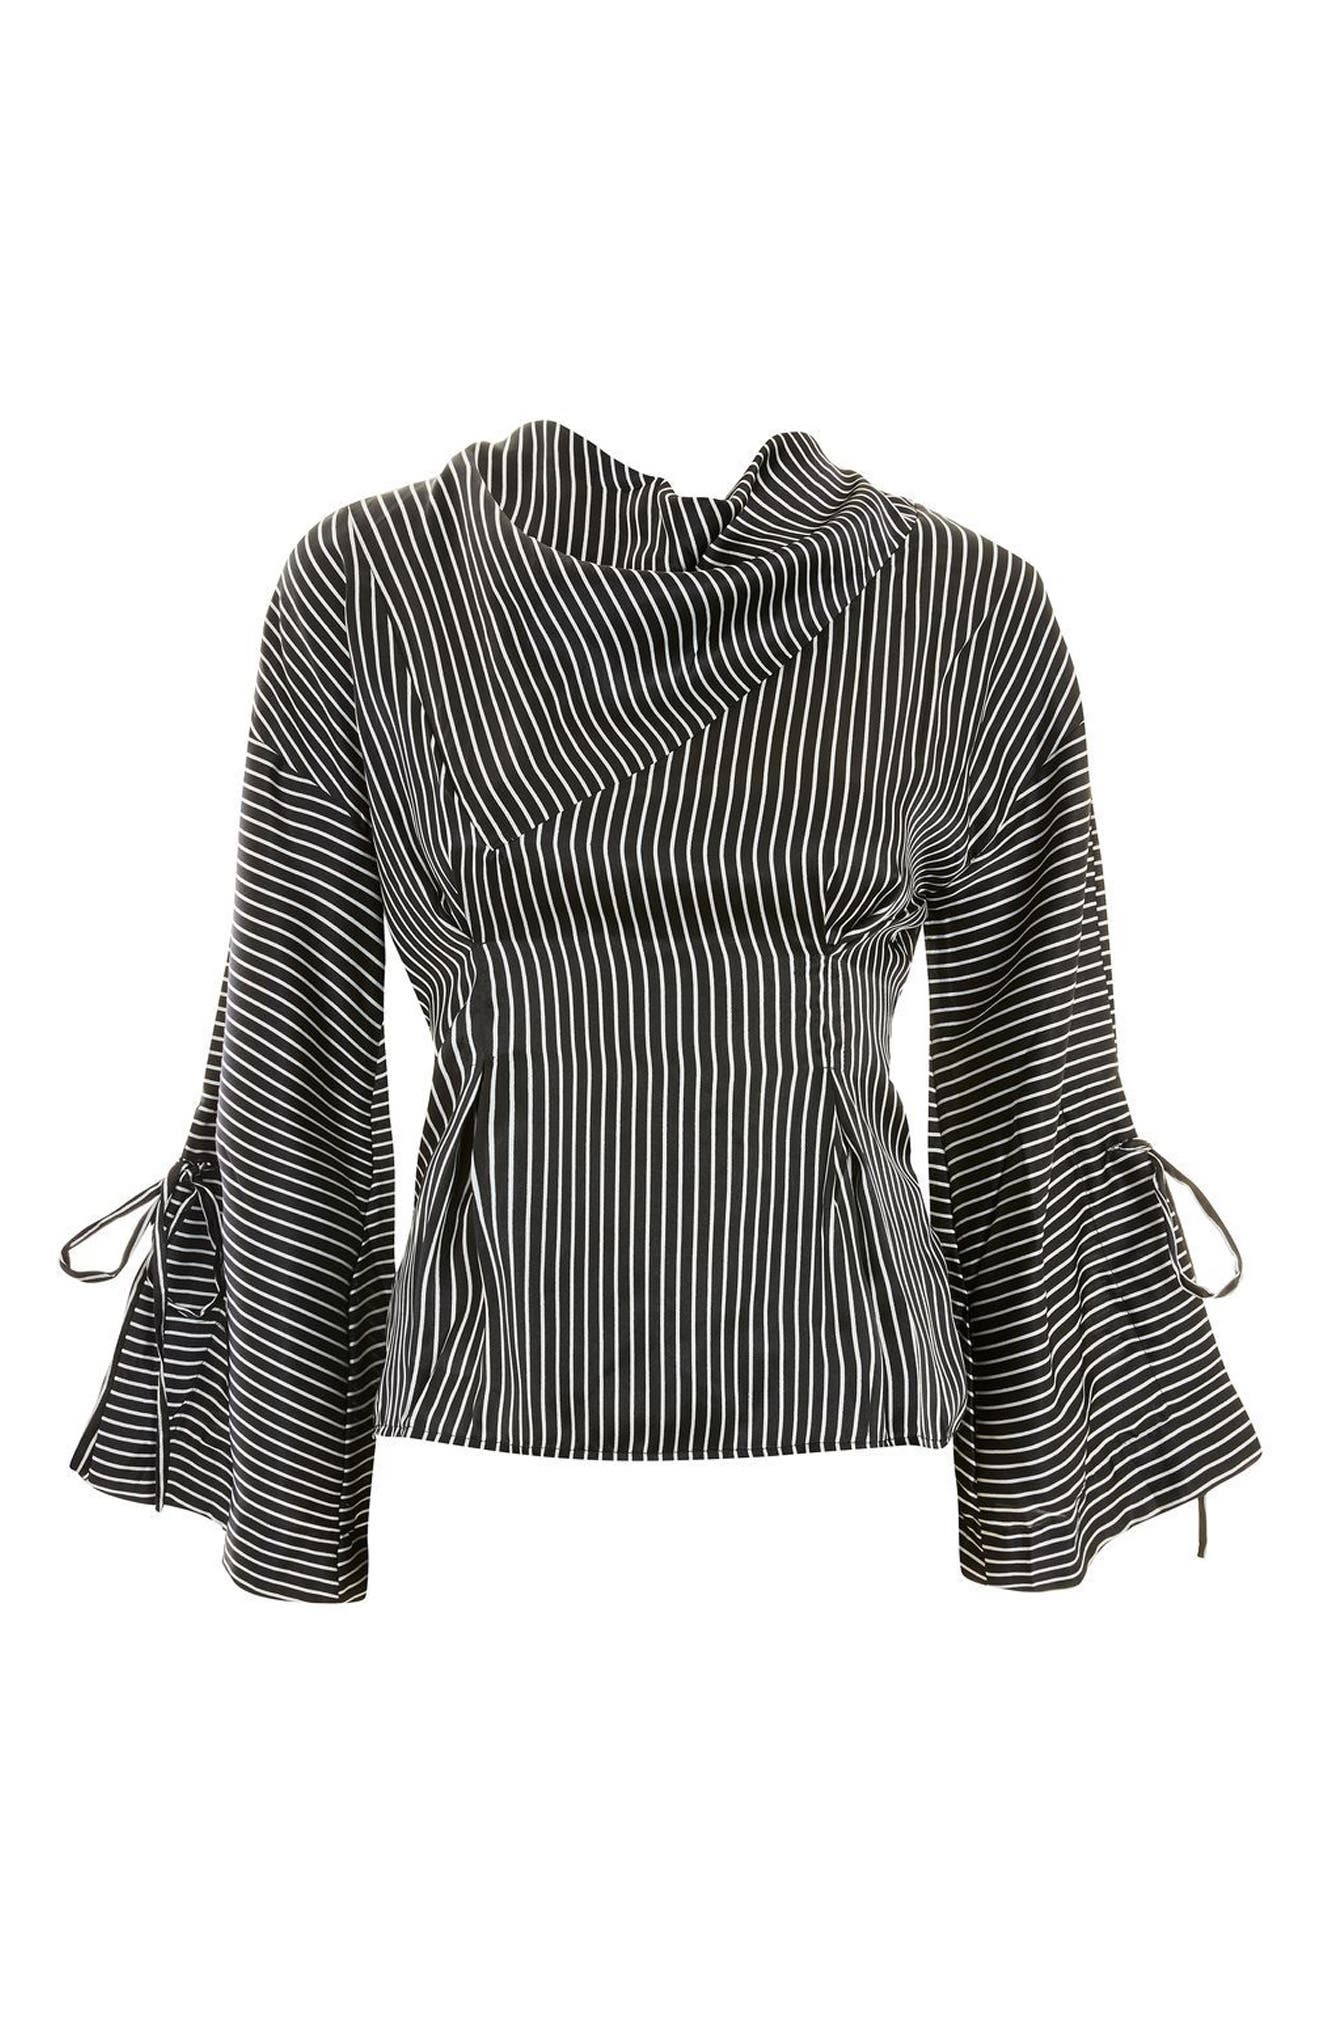 Drape Neck Twisted Stripe Blouse,                             Alternate thumbnail 4, color,                             001